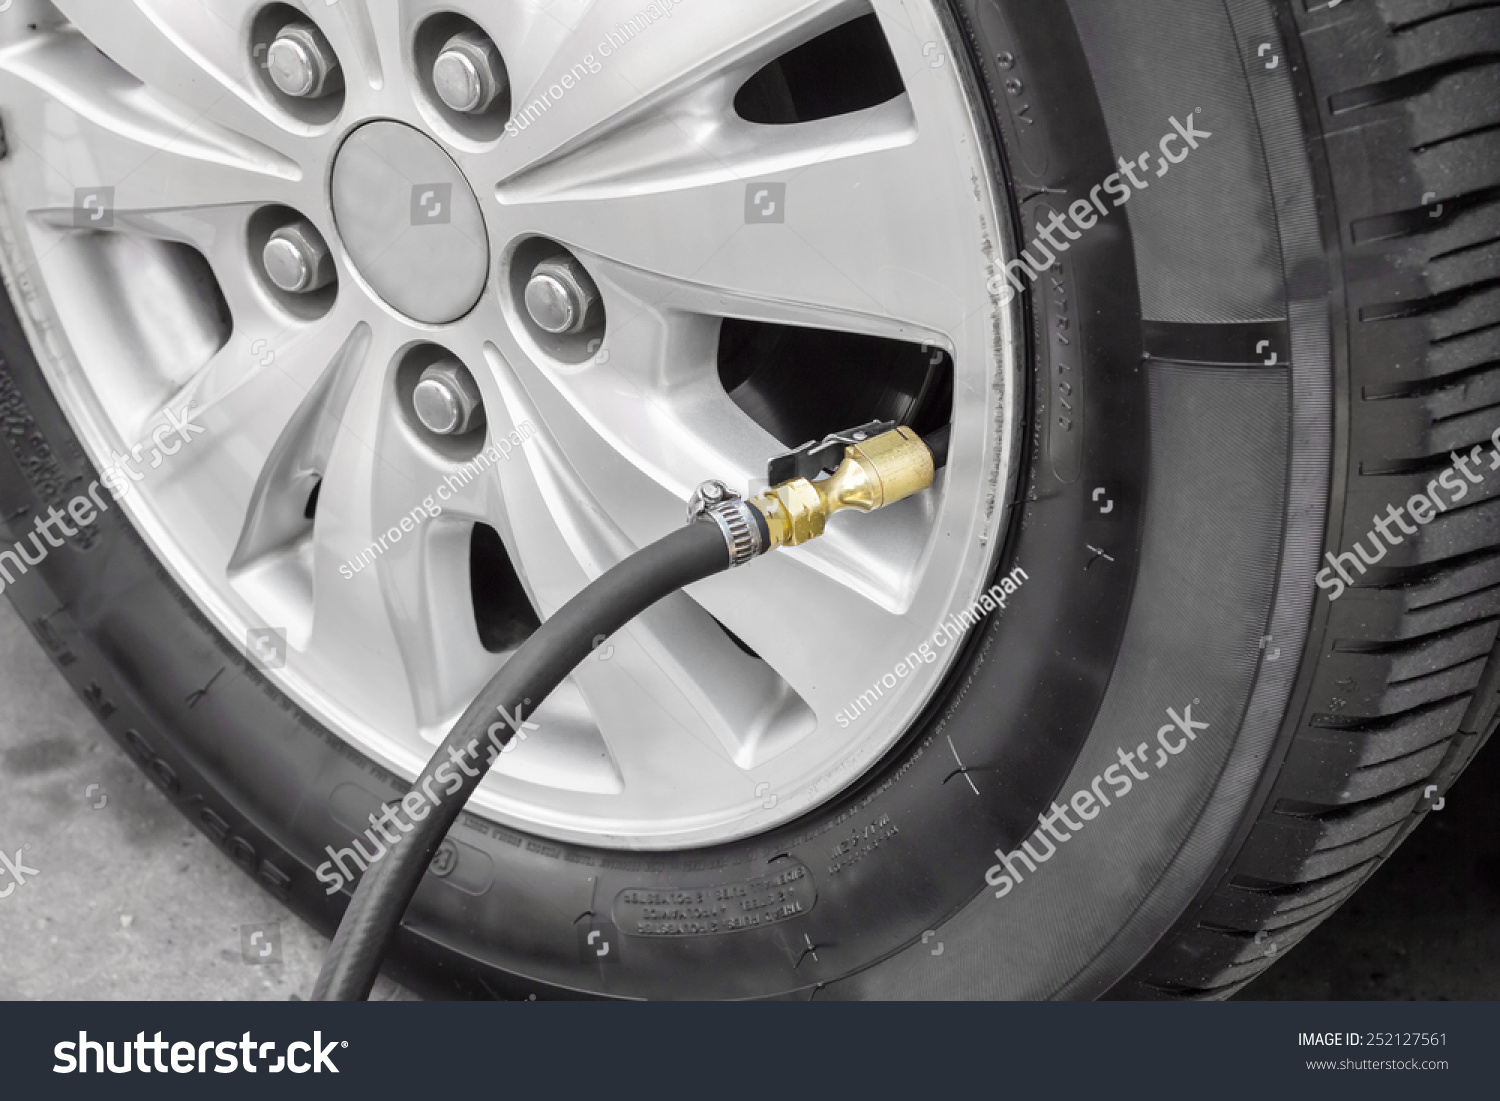 filling air into a car tire stock photo 252127561 shutterstock. Black Bedroom Furniture Sets. Home Design Ideas